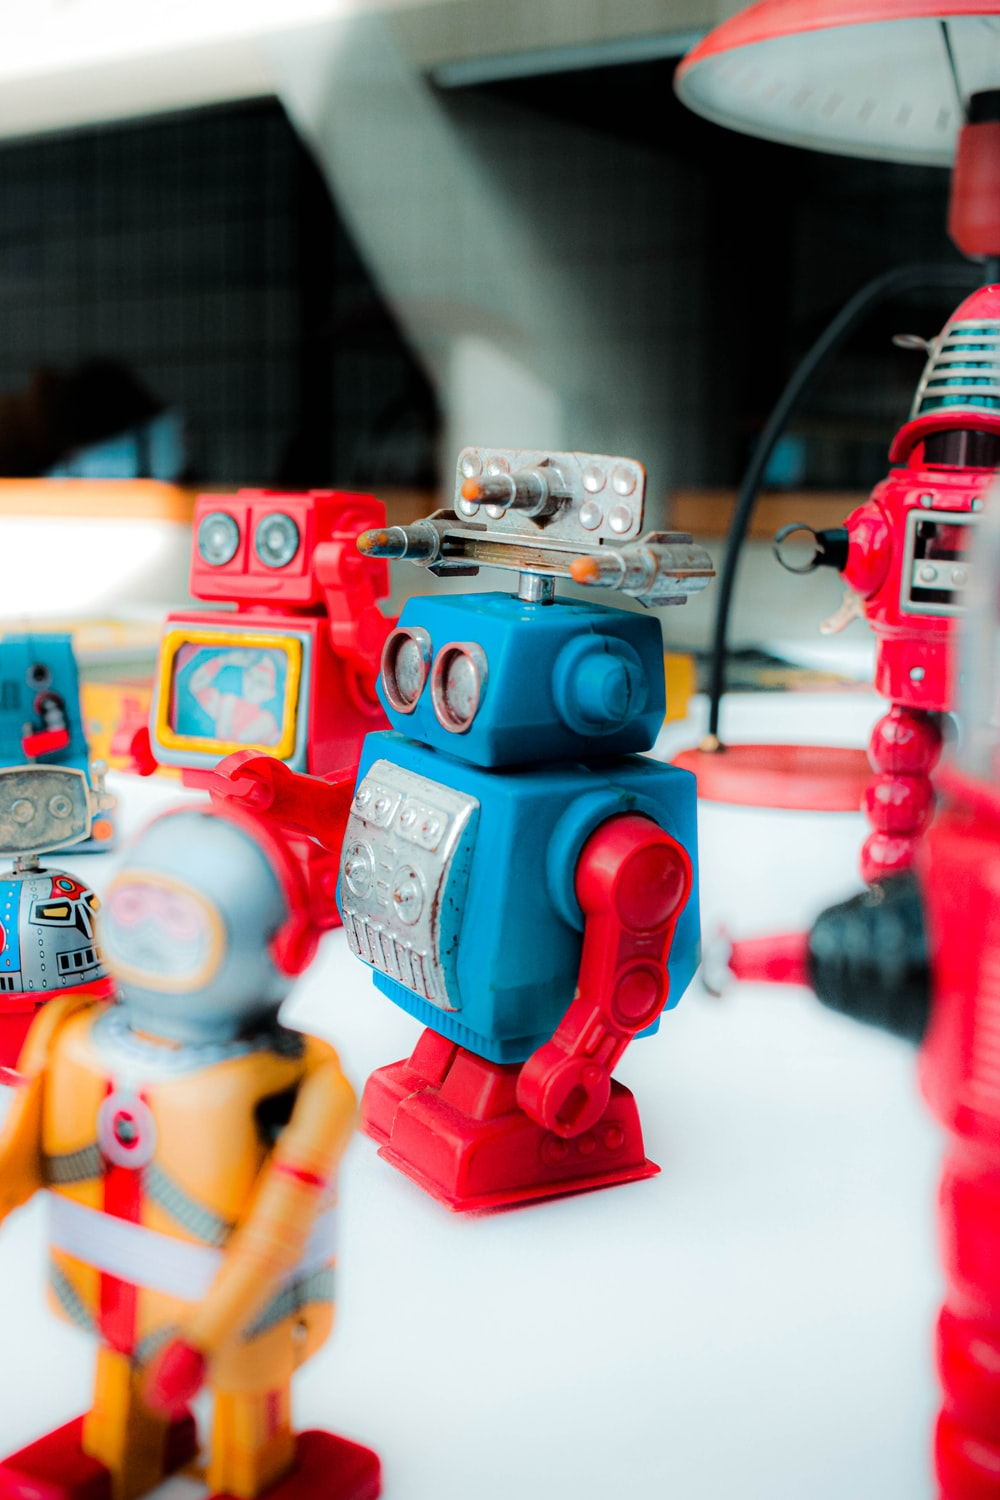 red and blue robot toy